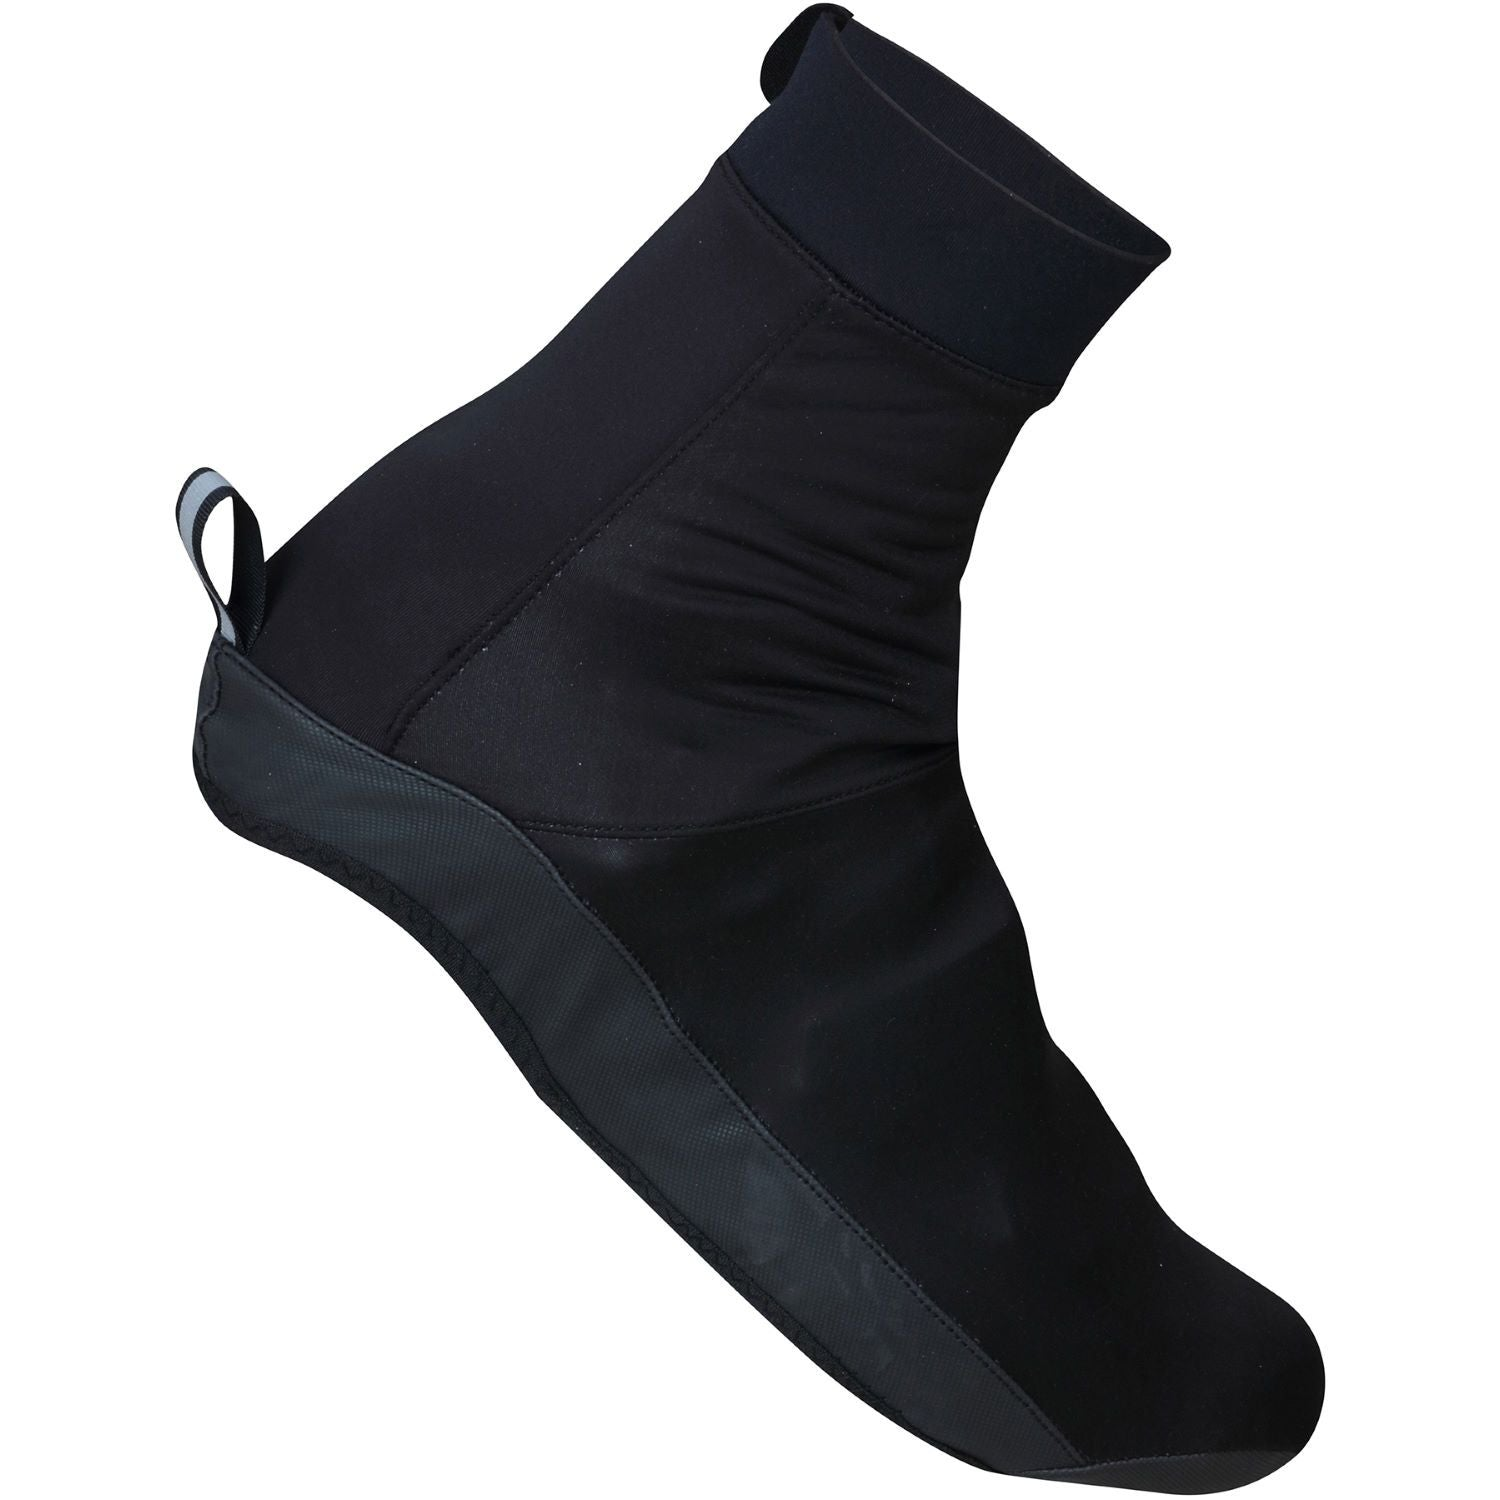 Sportful-Sportful Giara Thermal Bootie-Black-S-SF195490022-saddleback-elite-performance-cycling